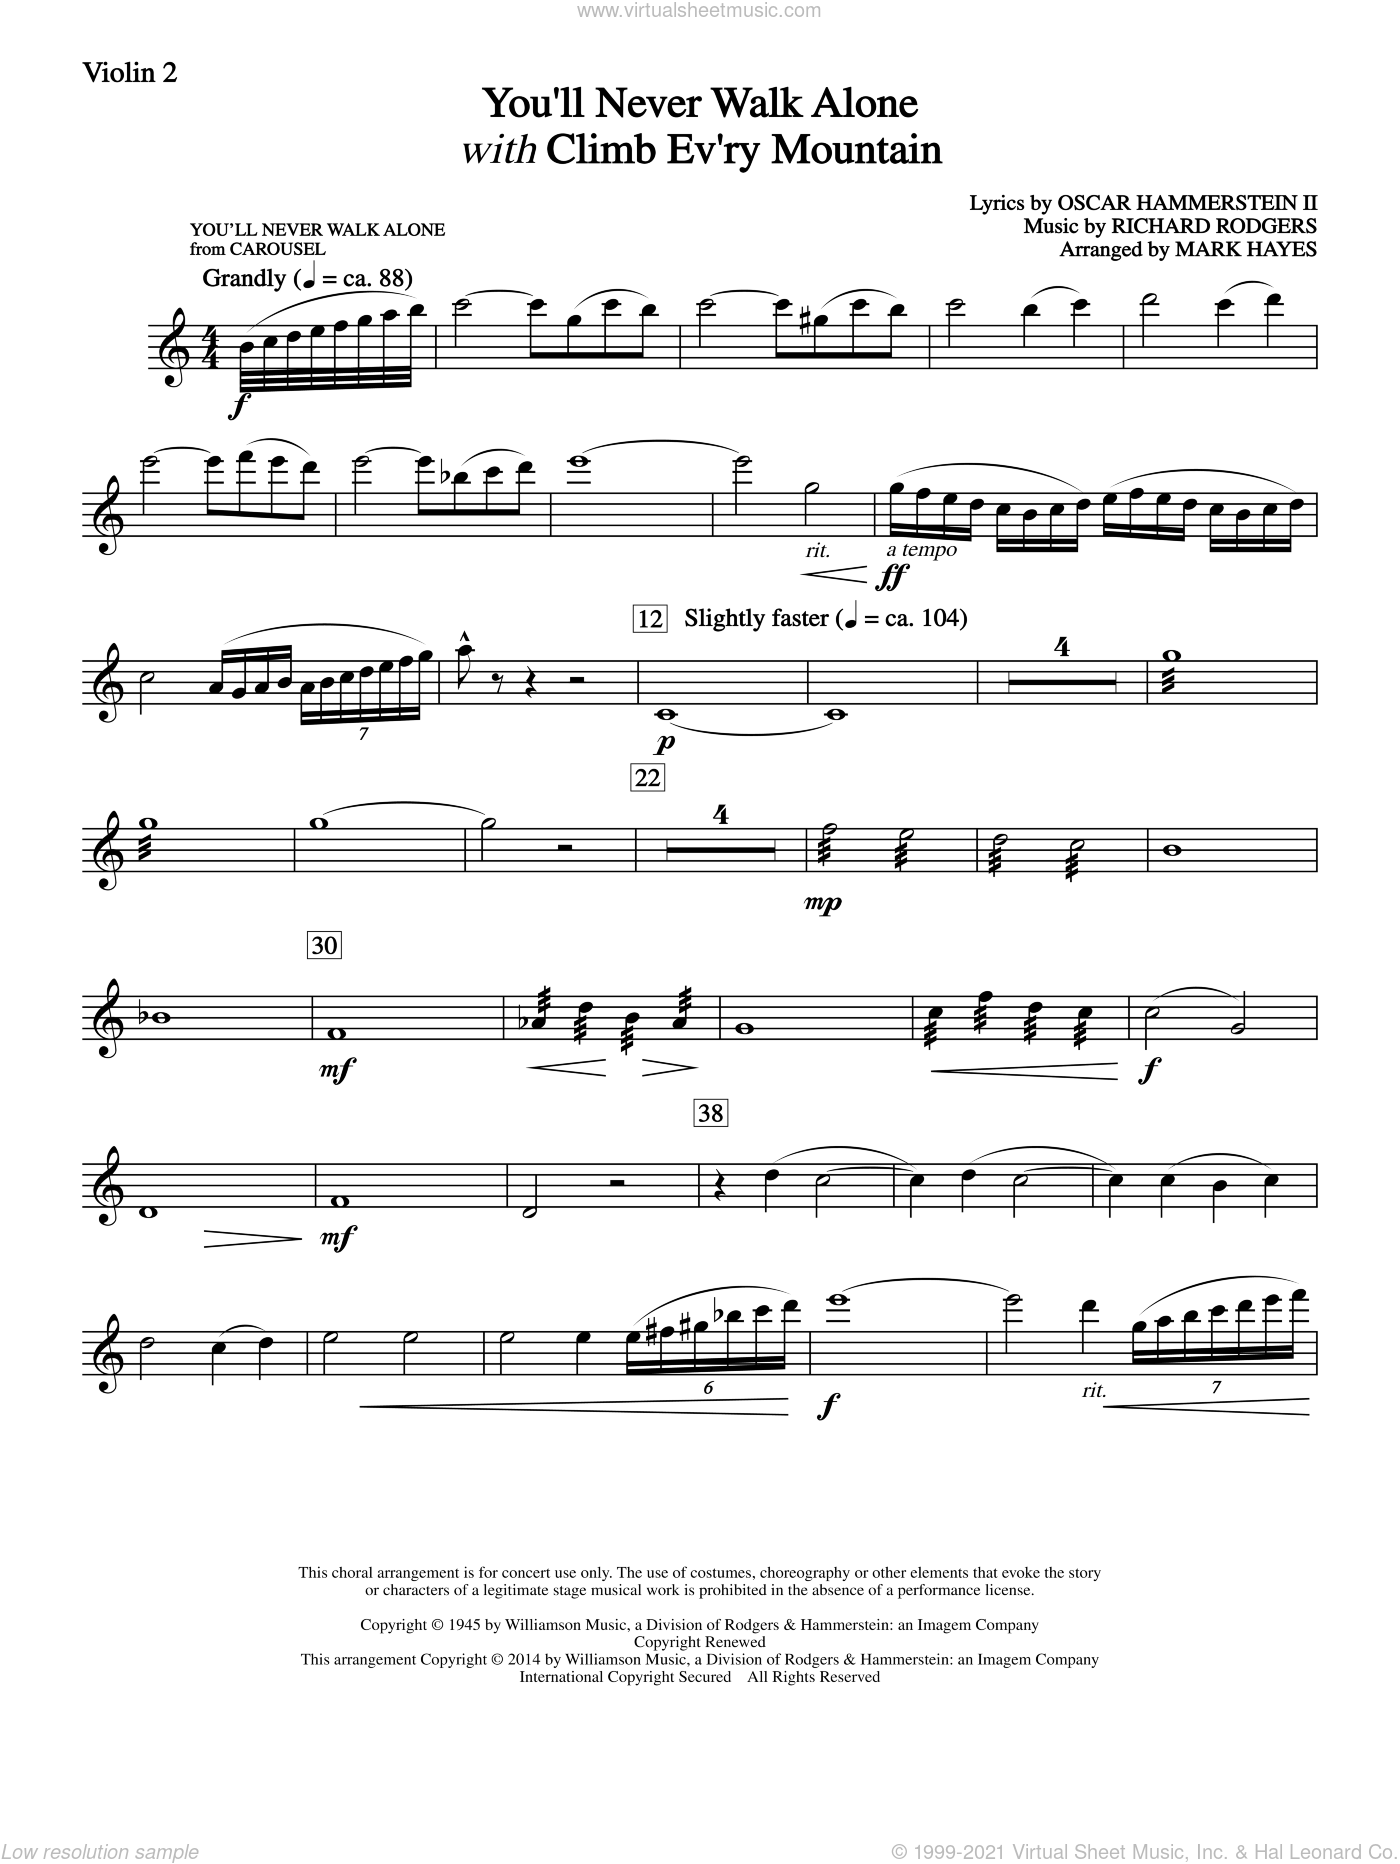 You'll Never Walk Alone (with Climb Every Mountain) sheet music for orchestra/band (violin 2) by Richard Rodgers, Tony Bennett, Mark Hayes and Oscar II Hammerstein. Score Image Preview.